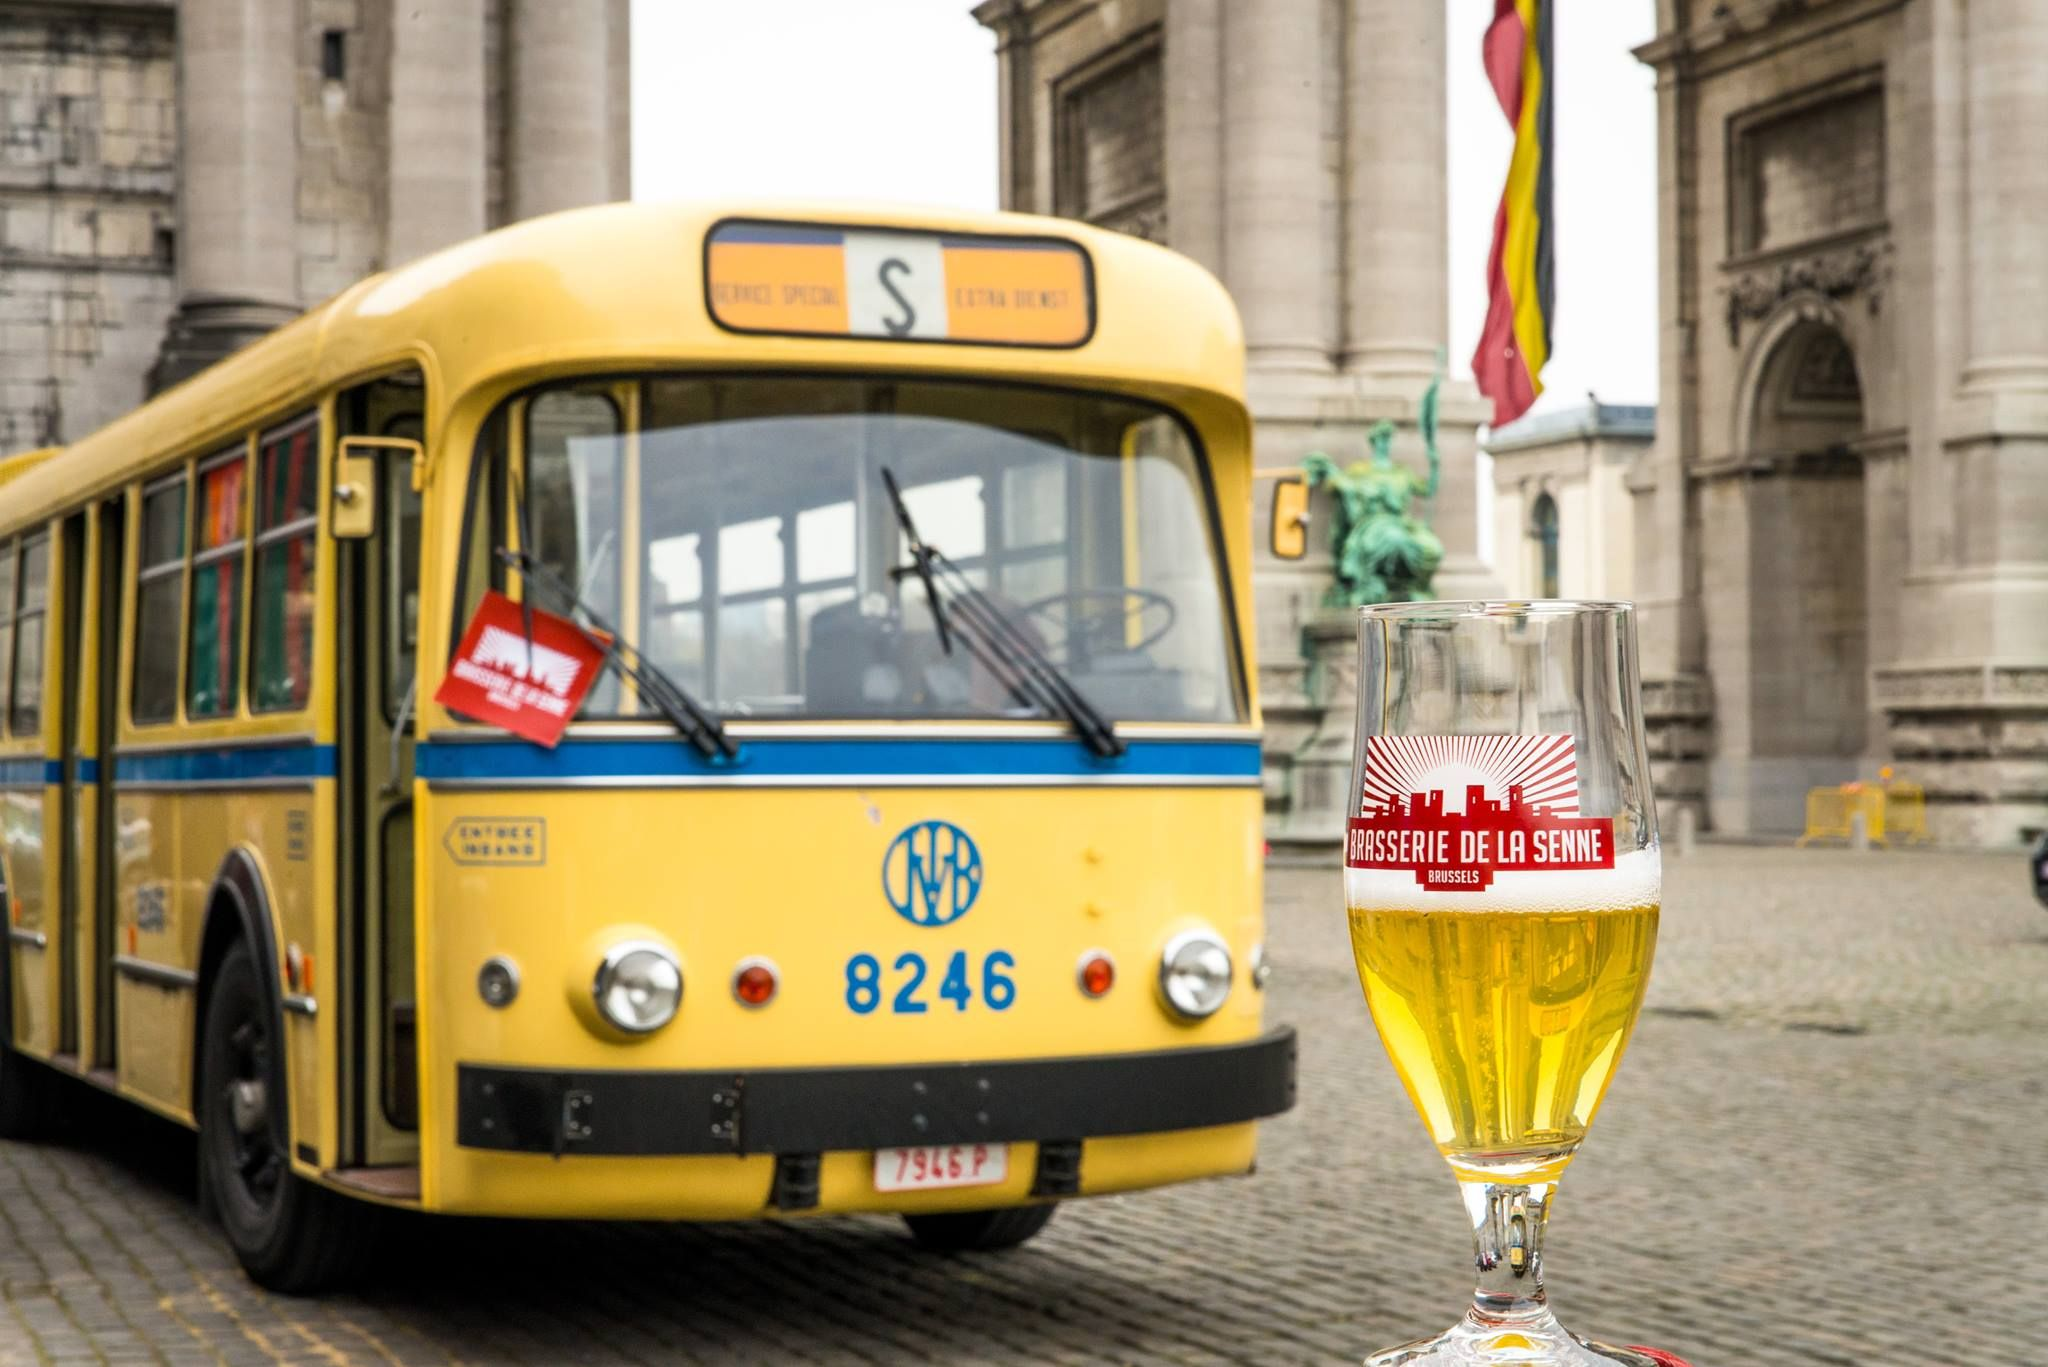 The Brussels Beer Bus is definitely THE coolest and funniest beer experience in Brussels!